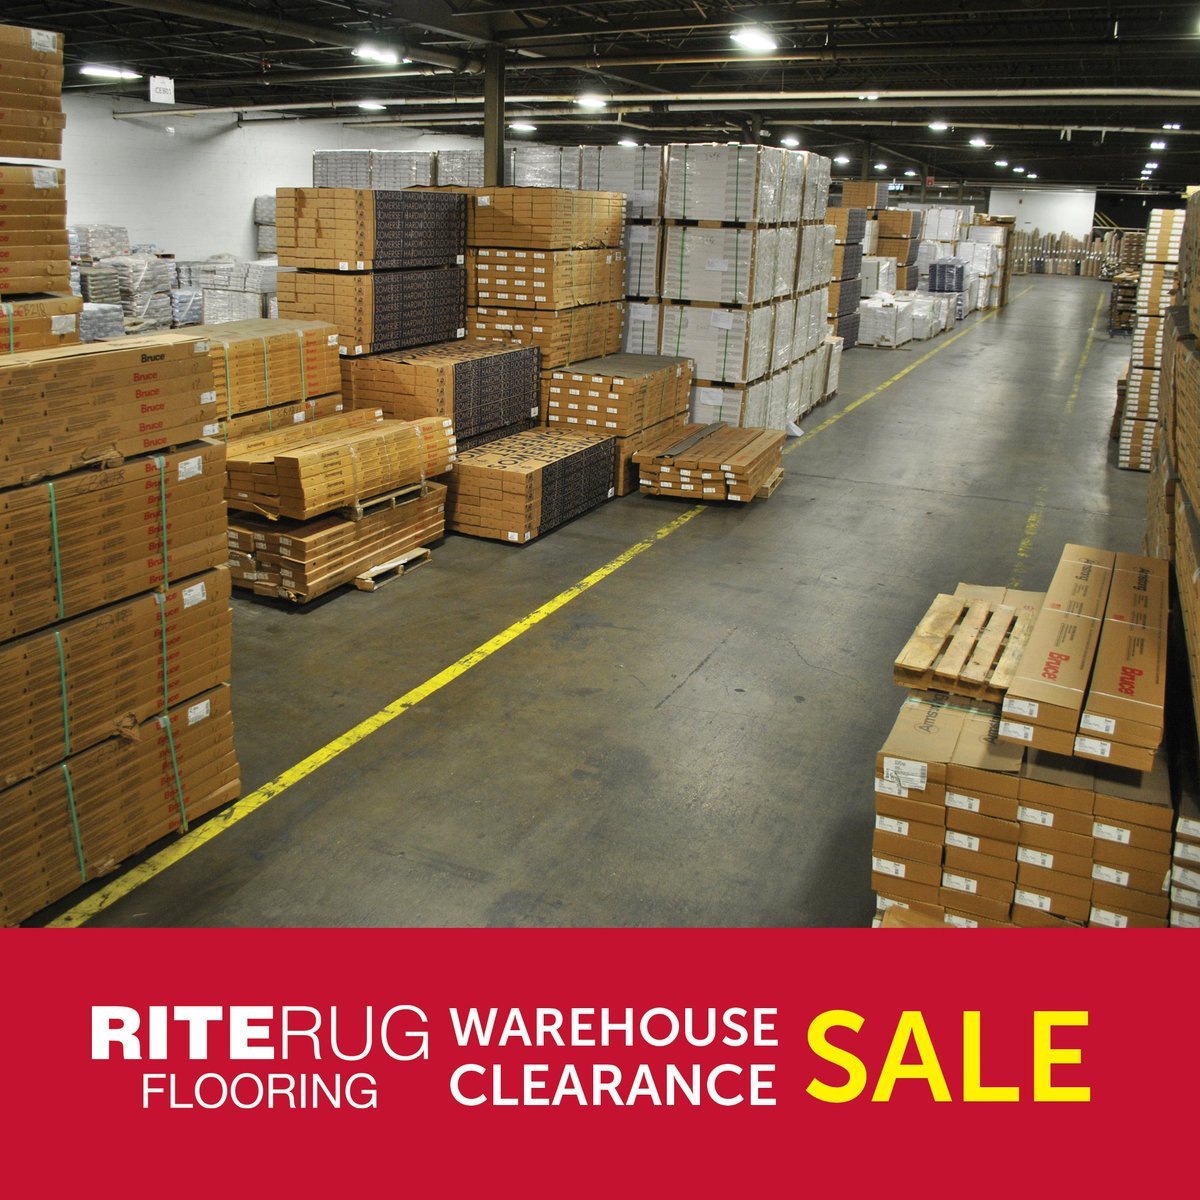 Home Decorators Warehouse Sale: Rite Rug Warehouse Sale